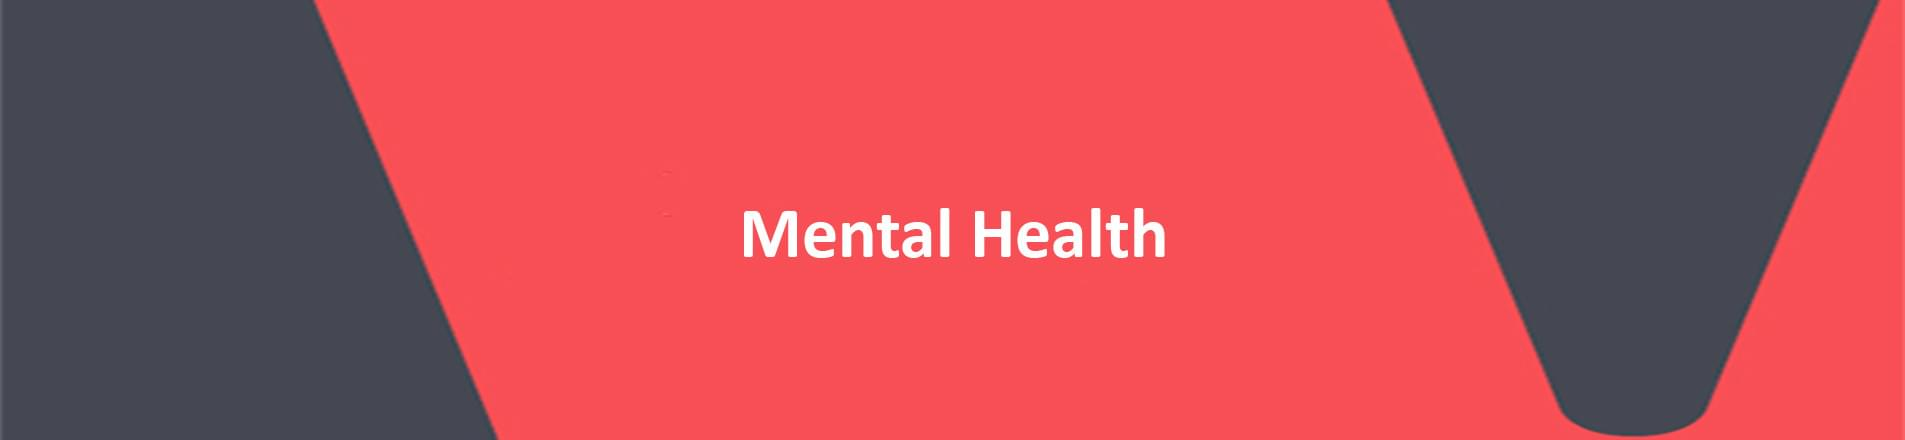 Image of the words mental health on a red background